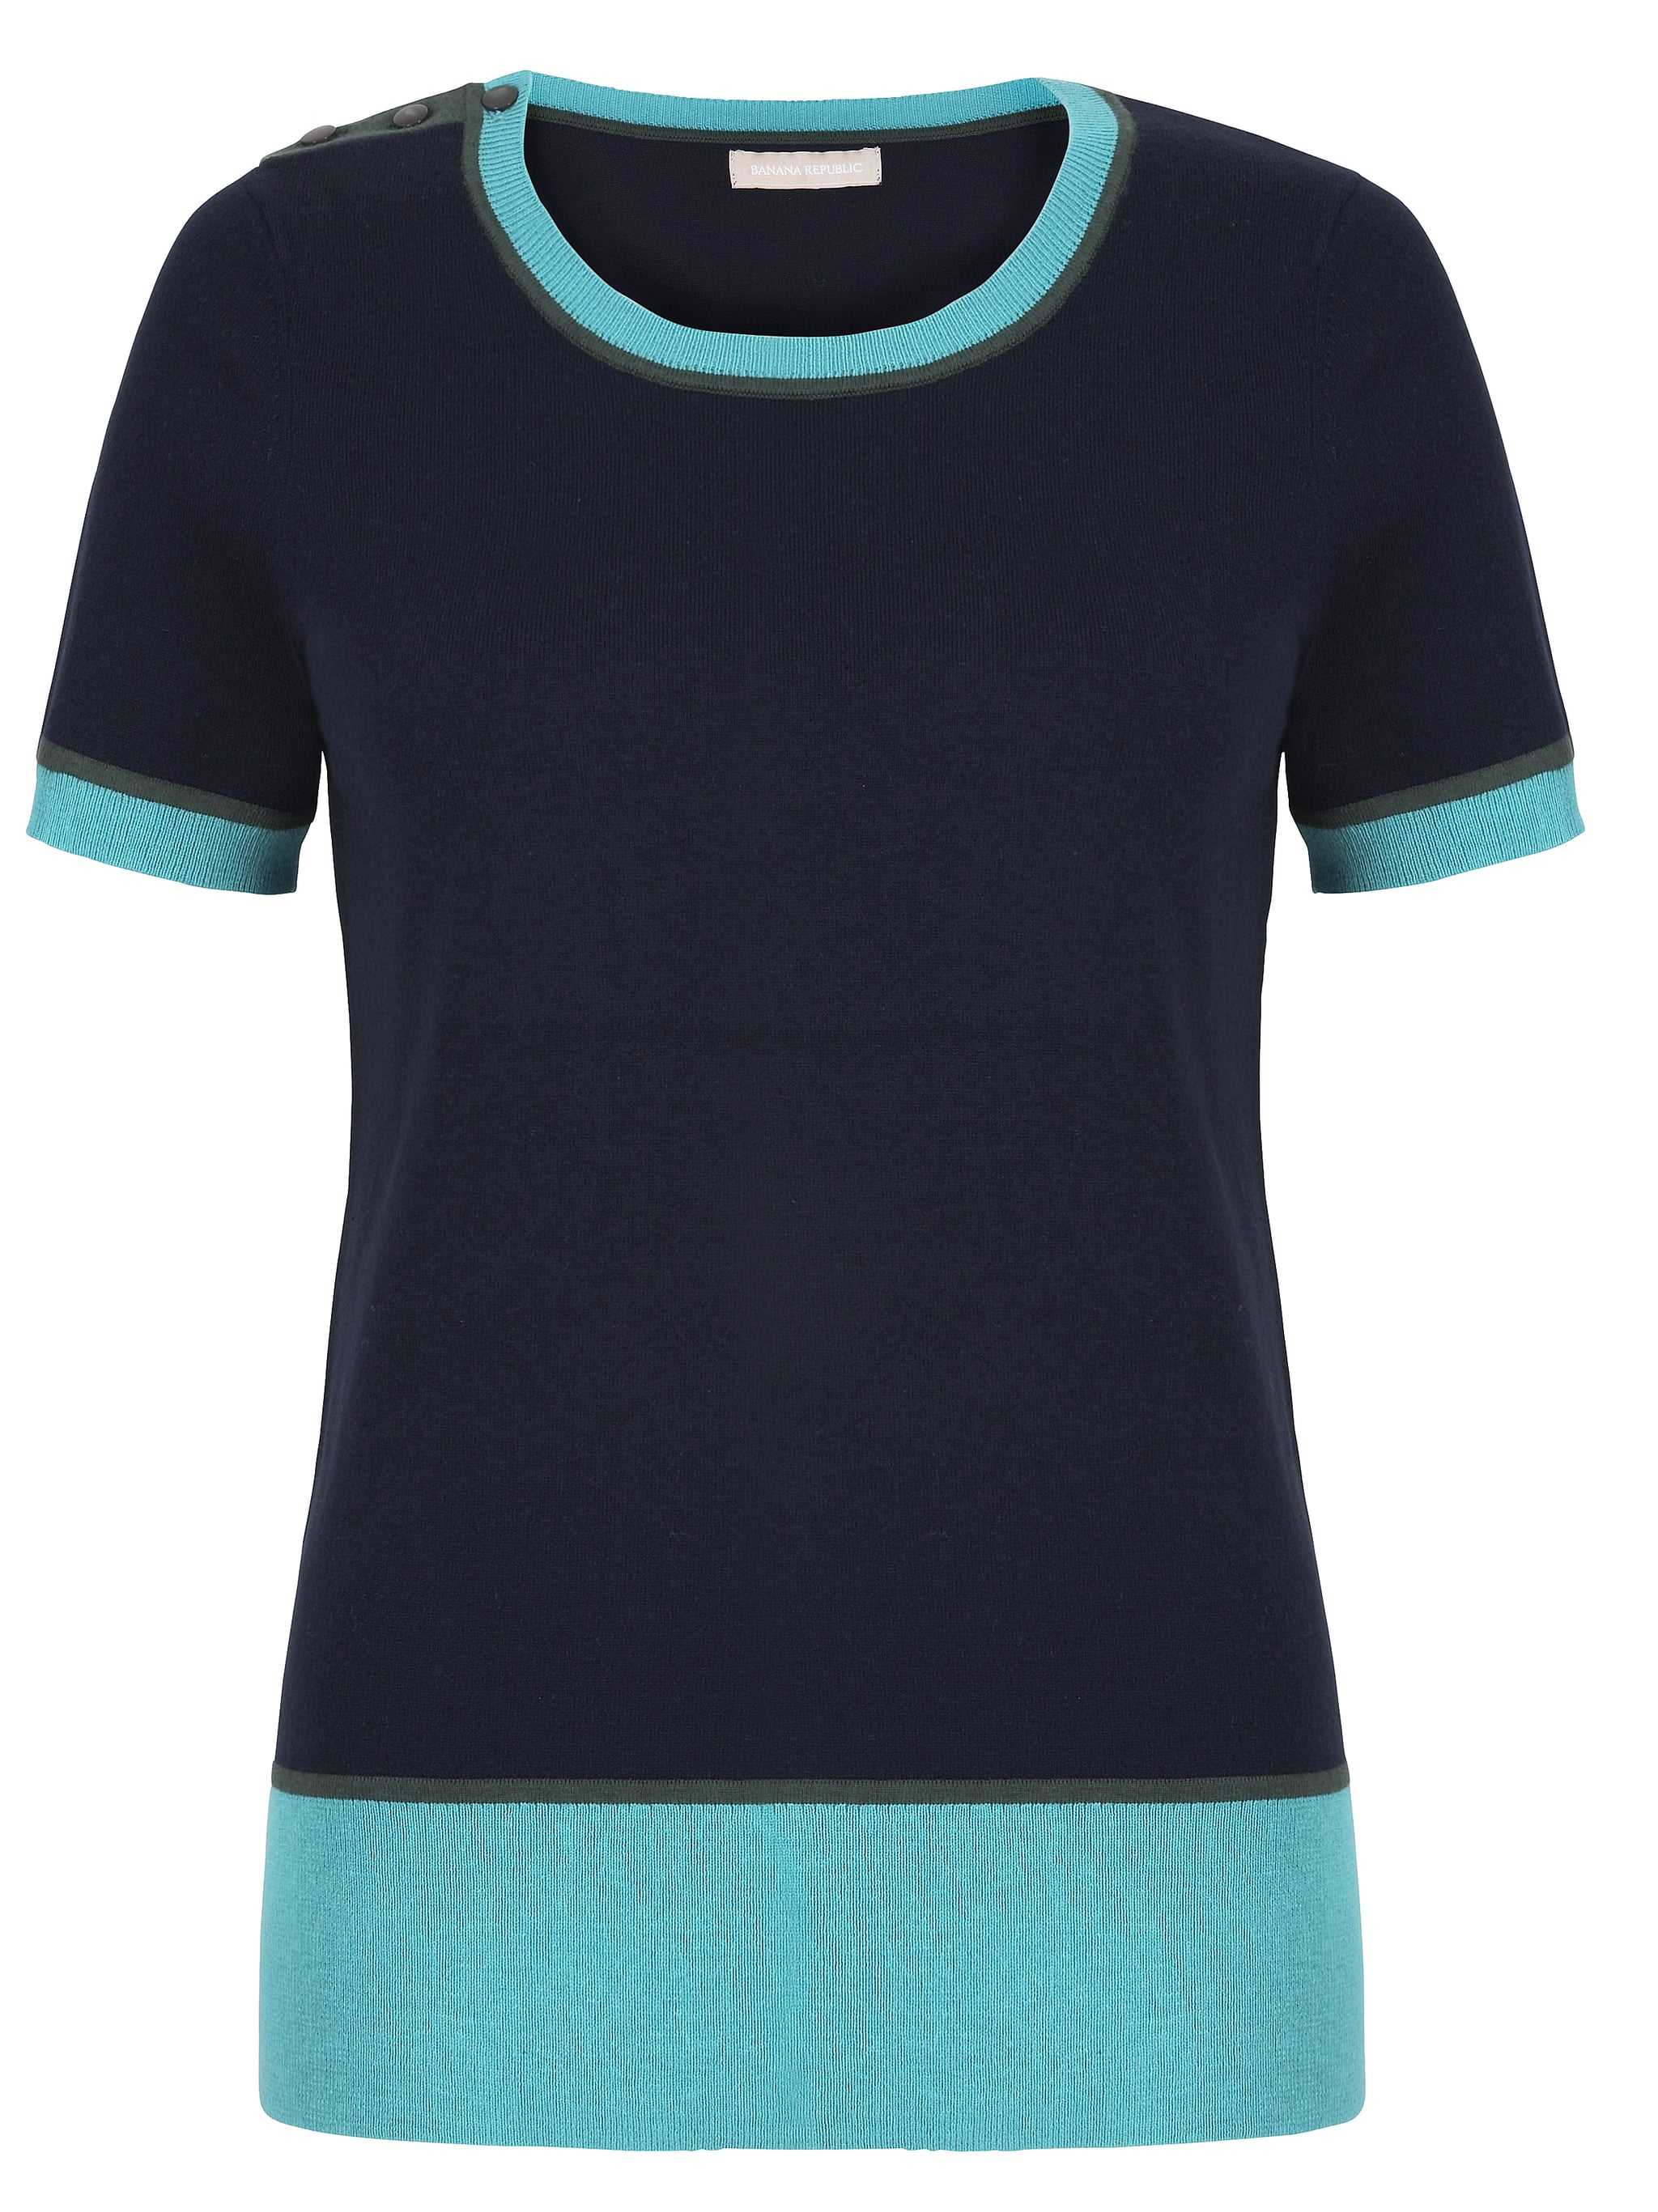 Searching for a sophisticated top to go with jeans? Try this colorblock short-sleeved look ($70) from the collaboration.  Photo courtesy of Banana Republic